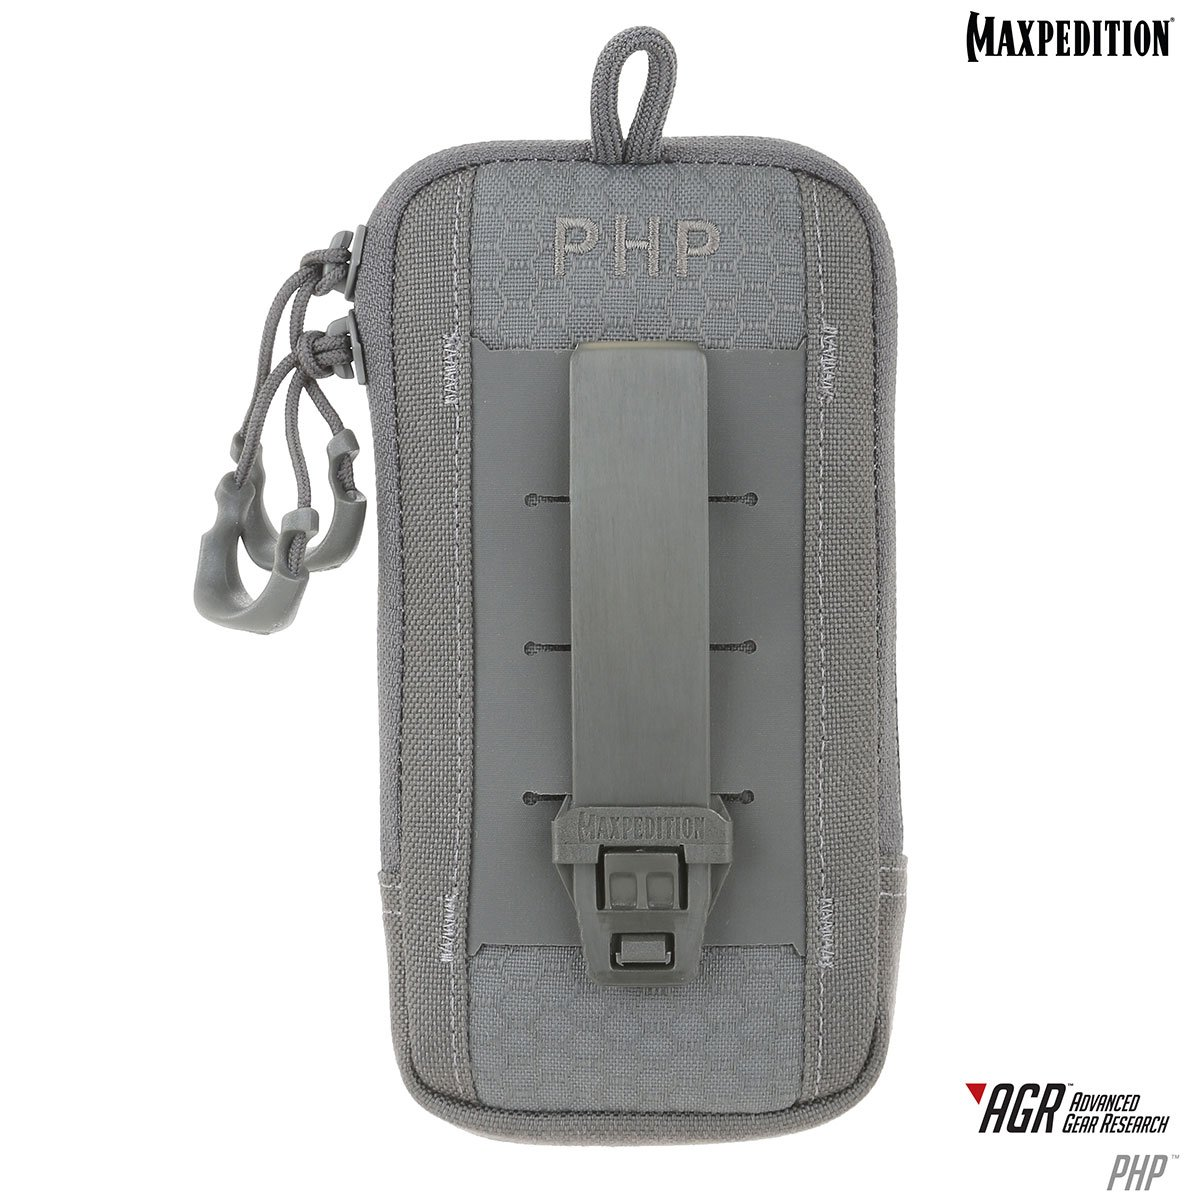 Maxpedition PHP iPhone 6 Pouch